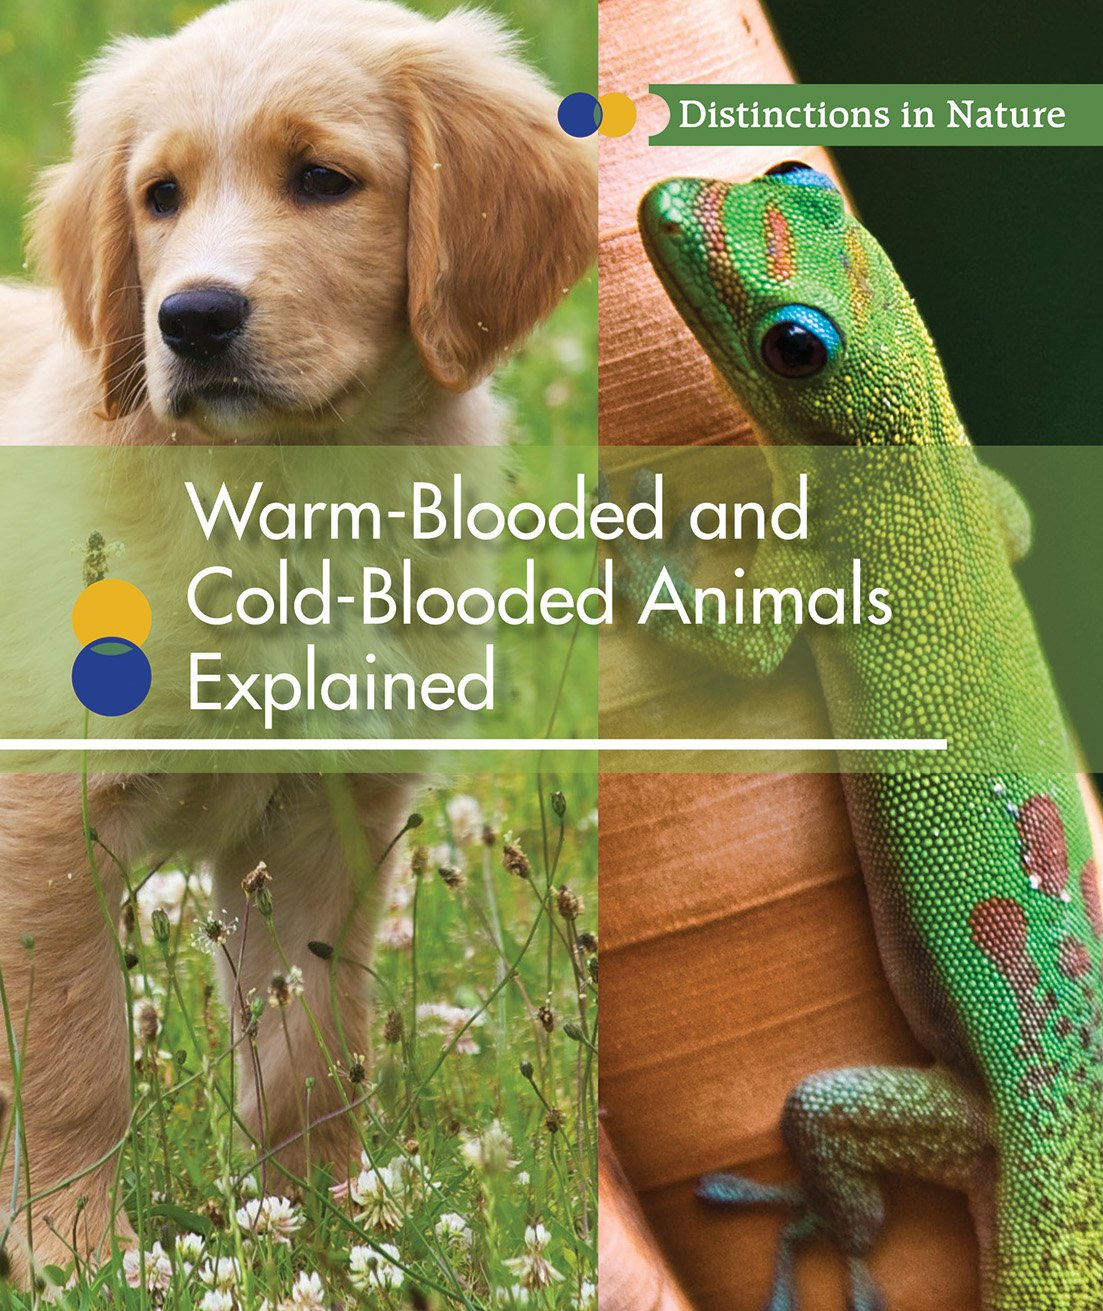 Warm-Blooded and Cold-Blooded Animals Explained: 6 Distinctions in Nature:  Amazon.co.uk: Klepeis, Alicia: Books